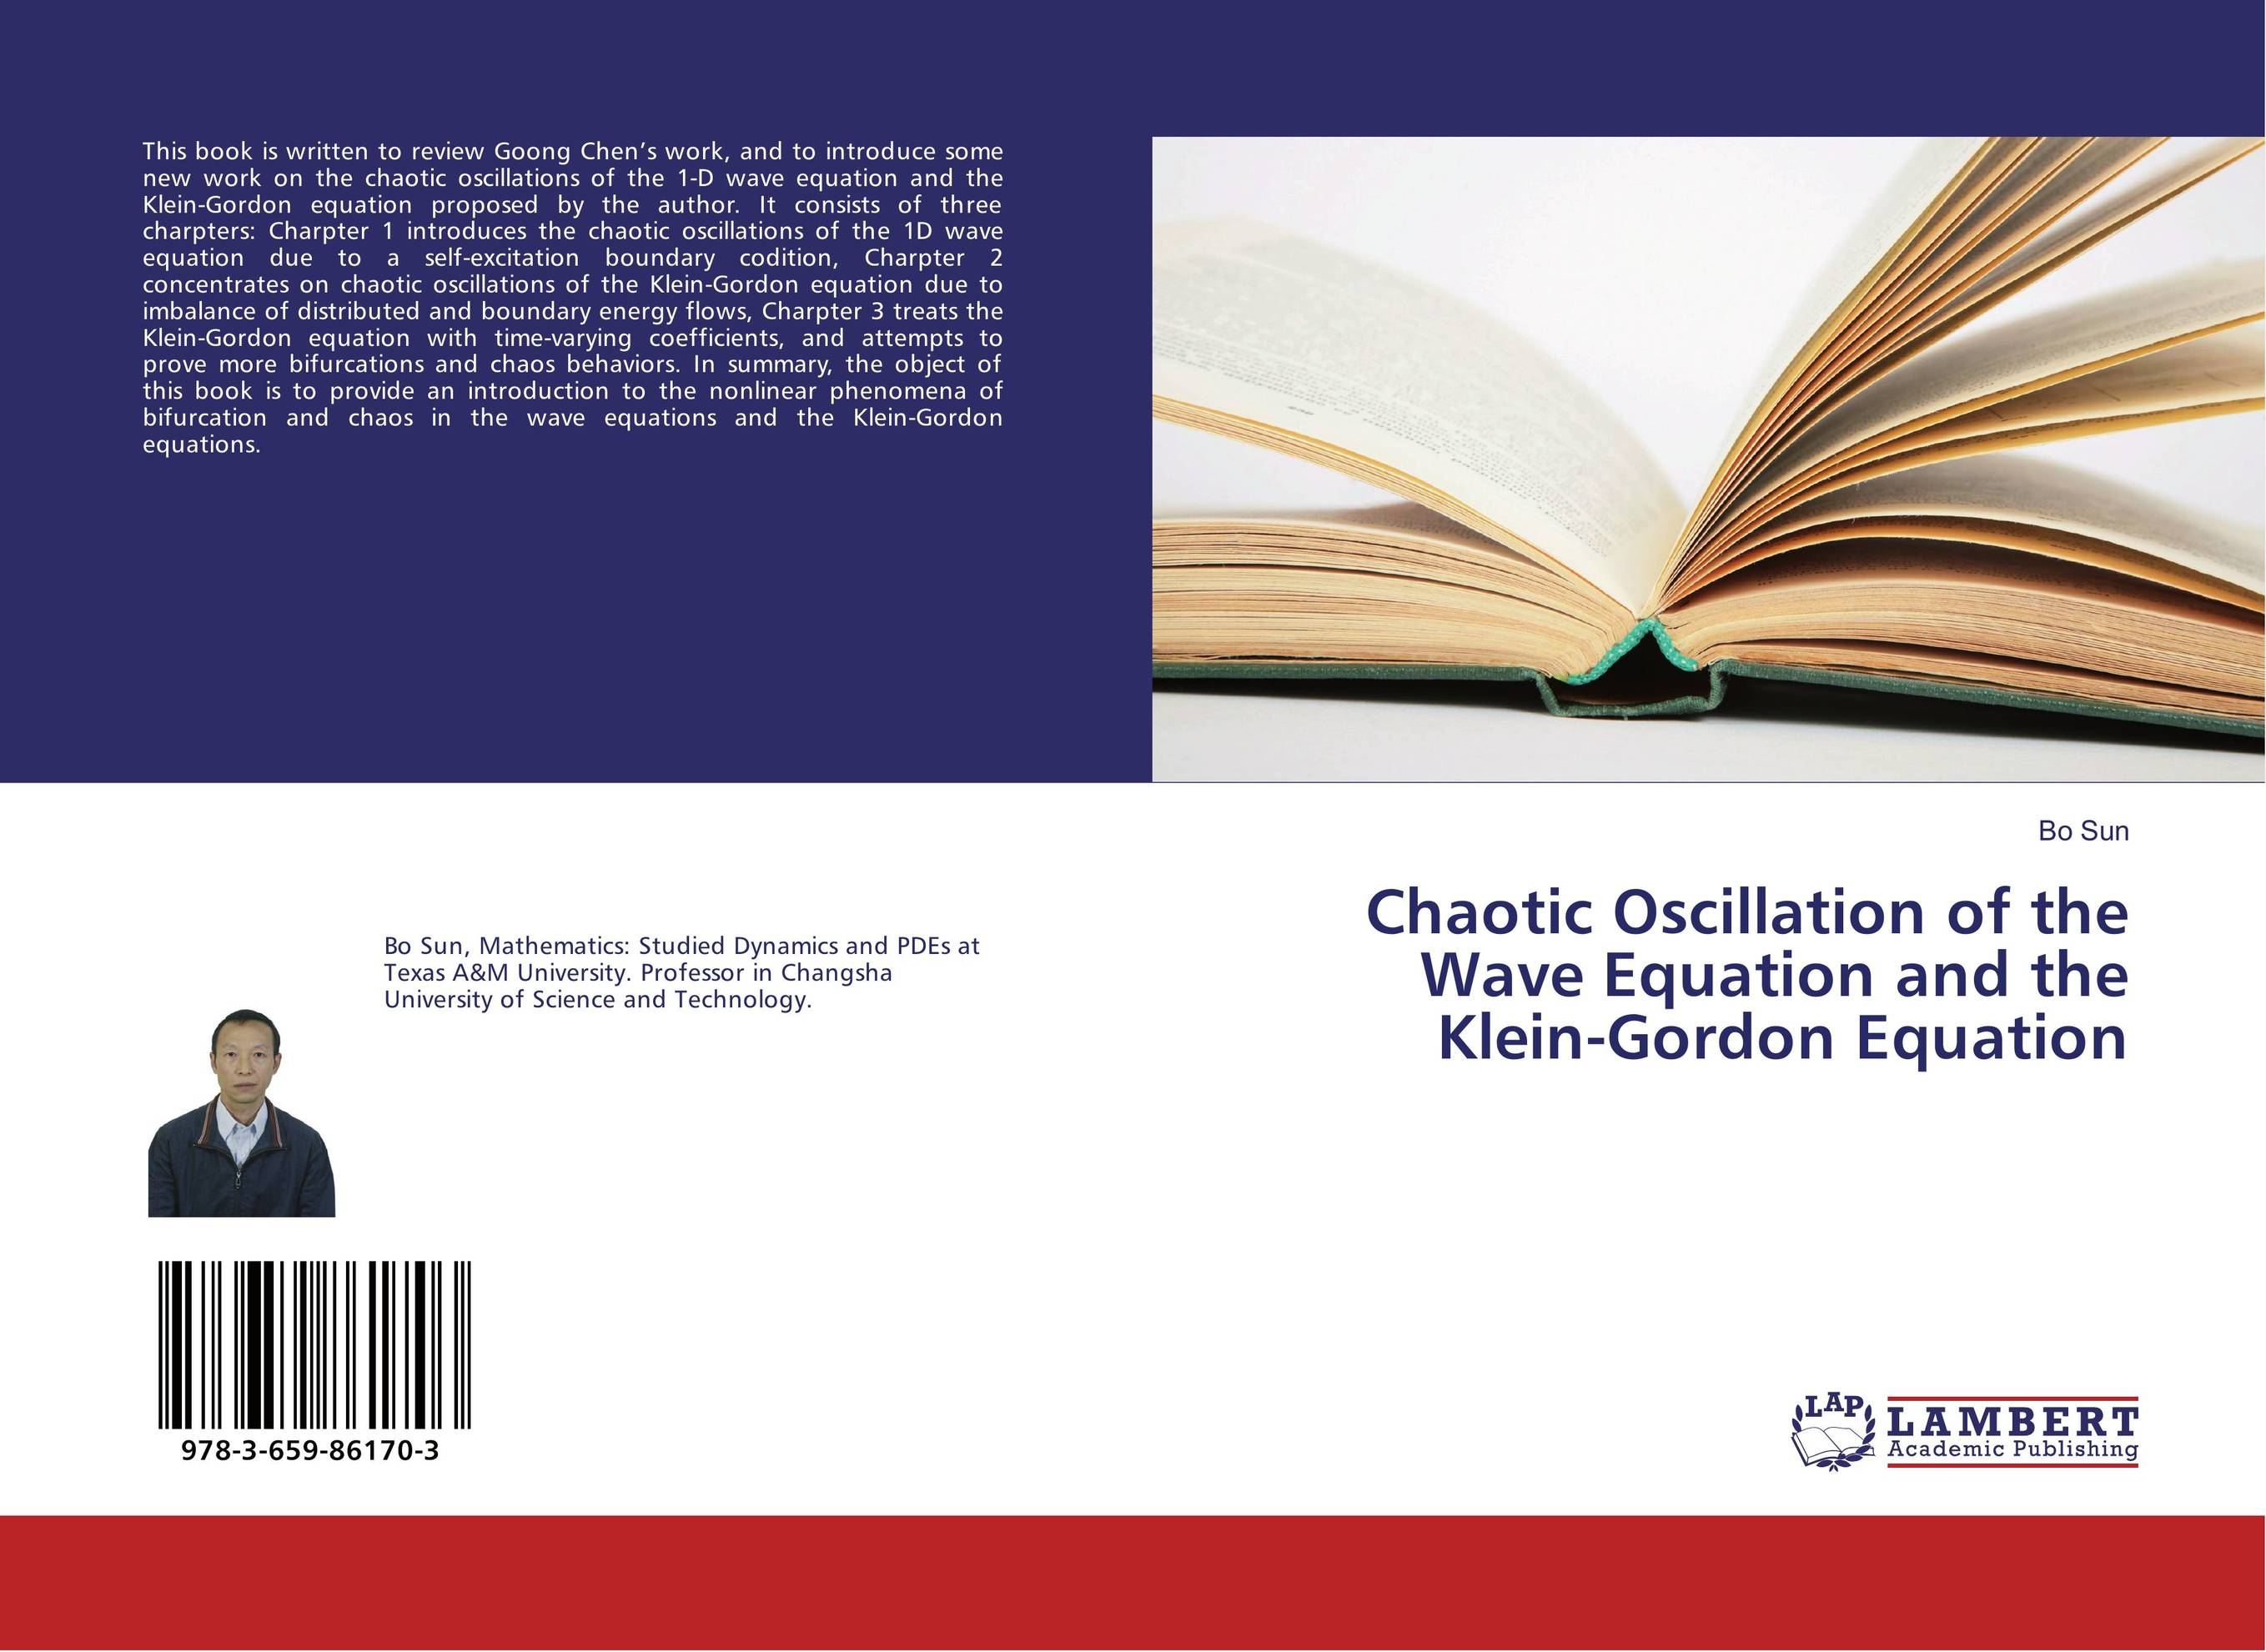 Chaotic Oscillation of the Wave Equation and the Klein-Gordon Equation phil simon the next wave of technologies opportunities in chaos